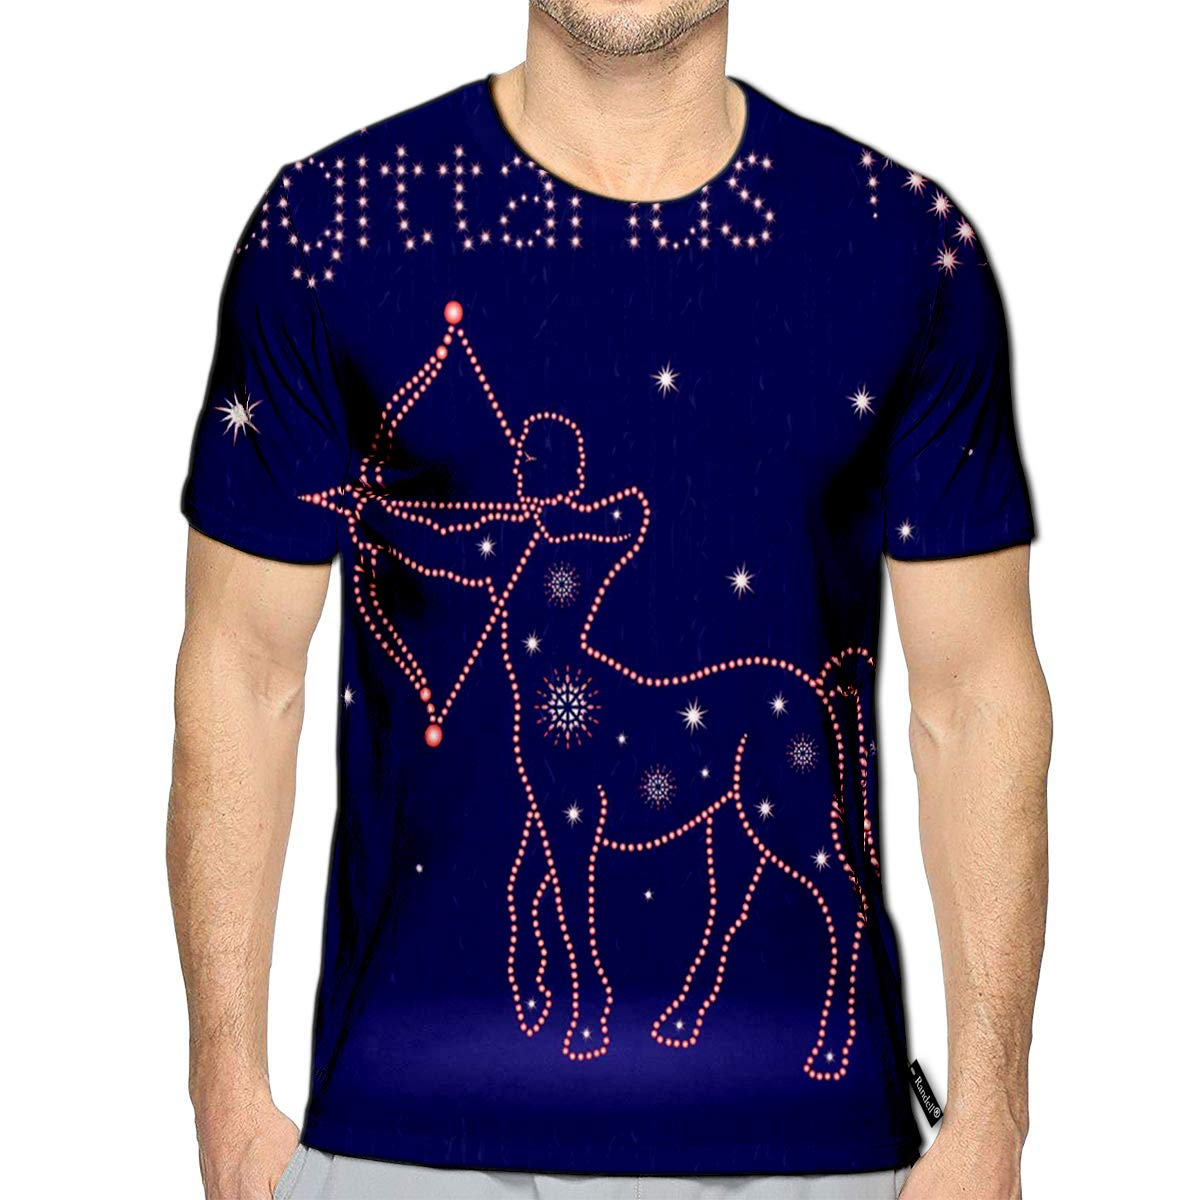 3D Printed T-Shirts Zodiac Sign Sagittarius On The Starry Sky with Stylized Star